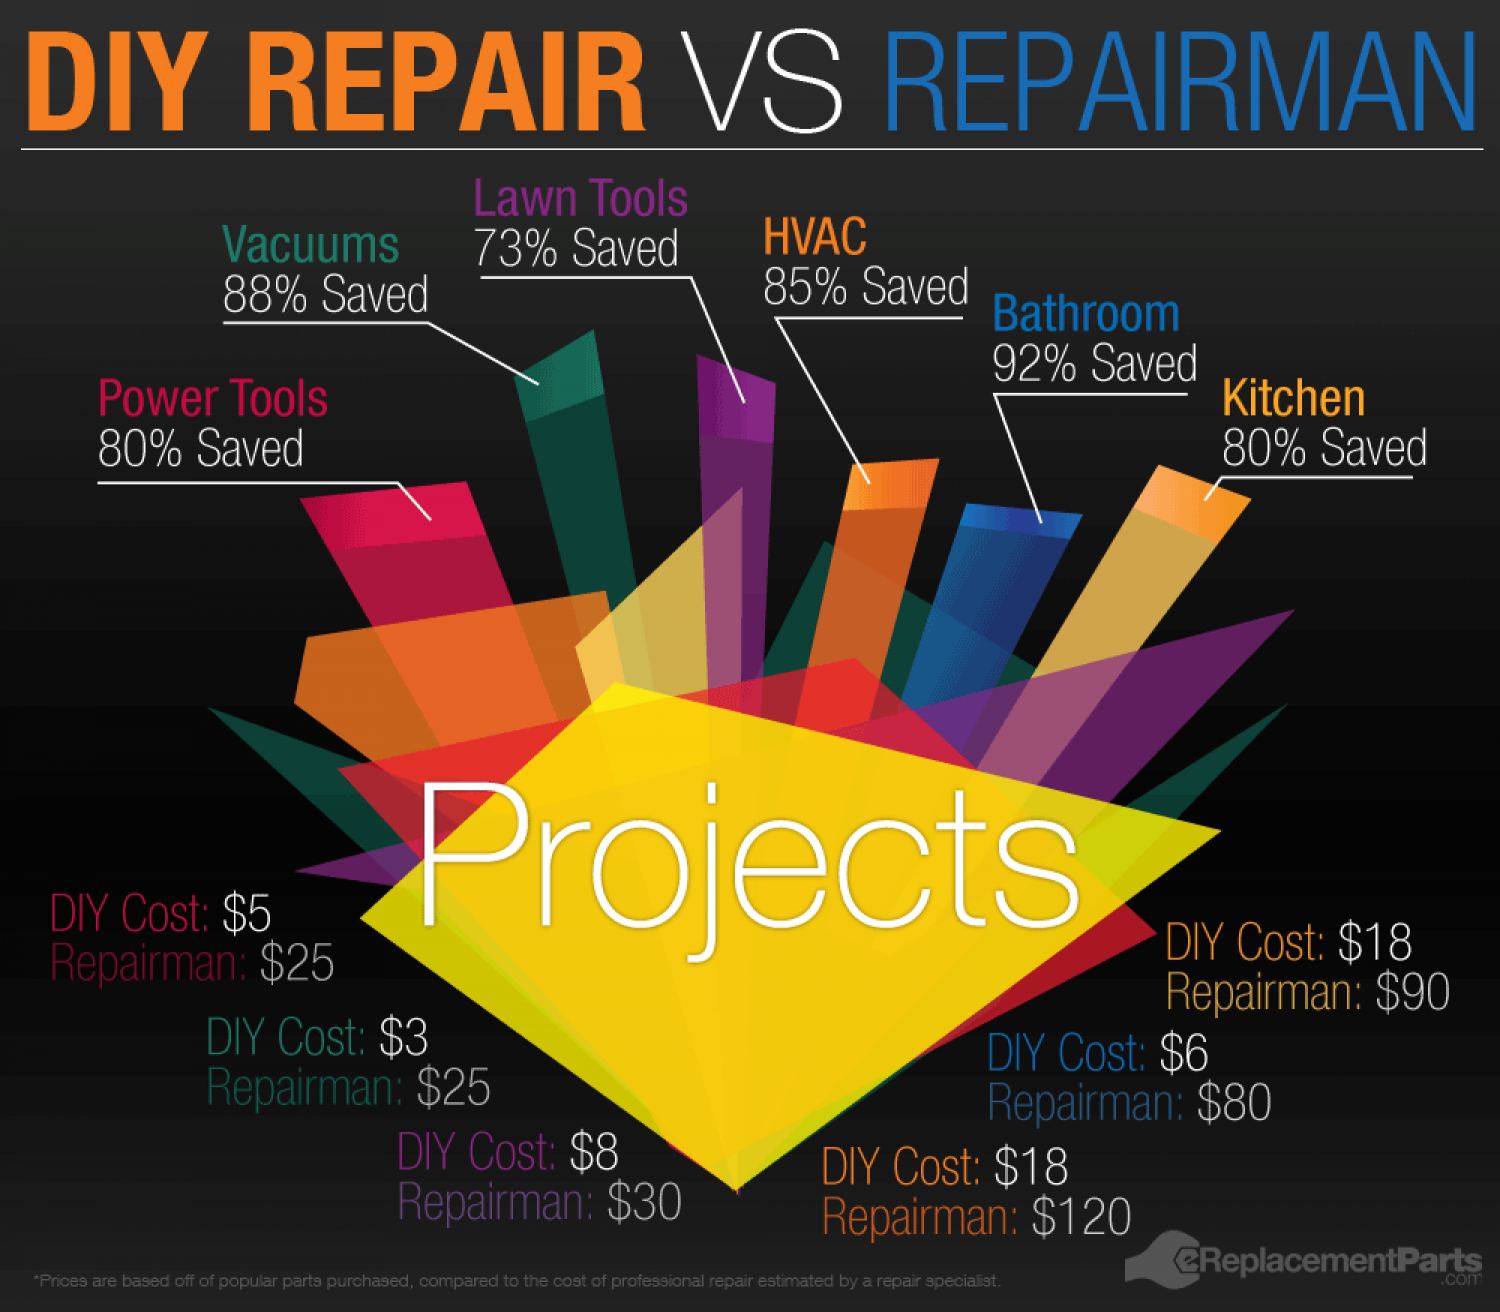 DIY Repair vs Repairman Infographic